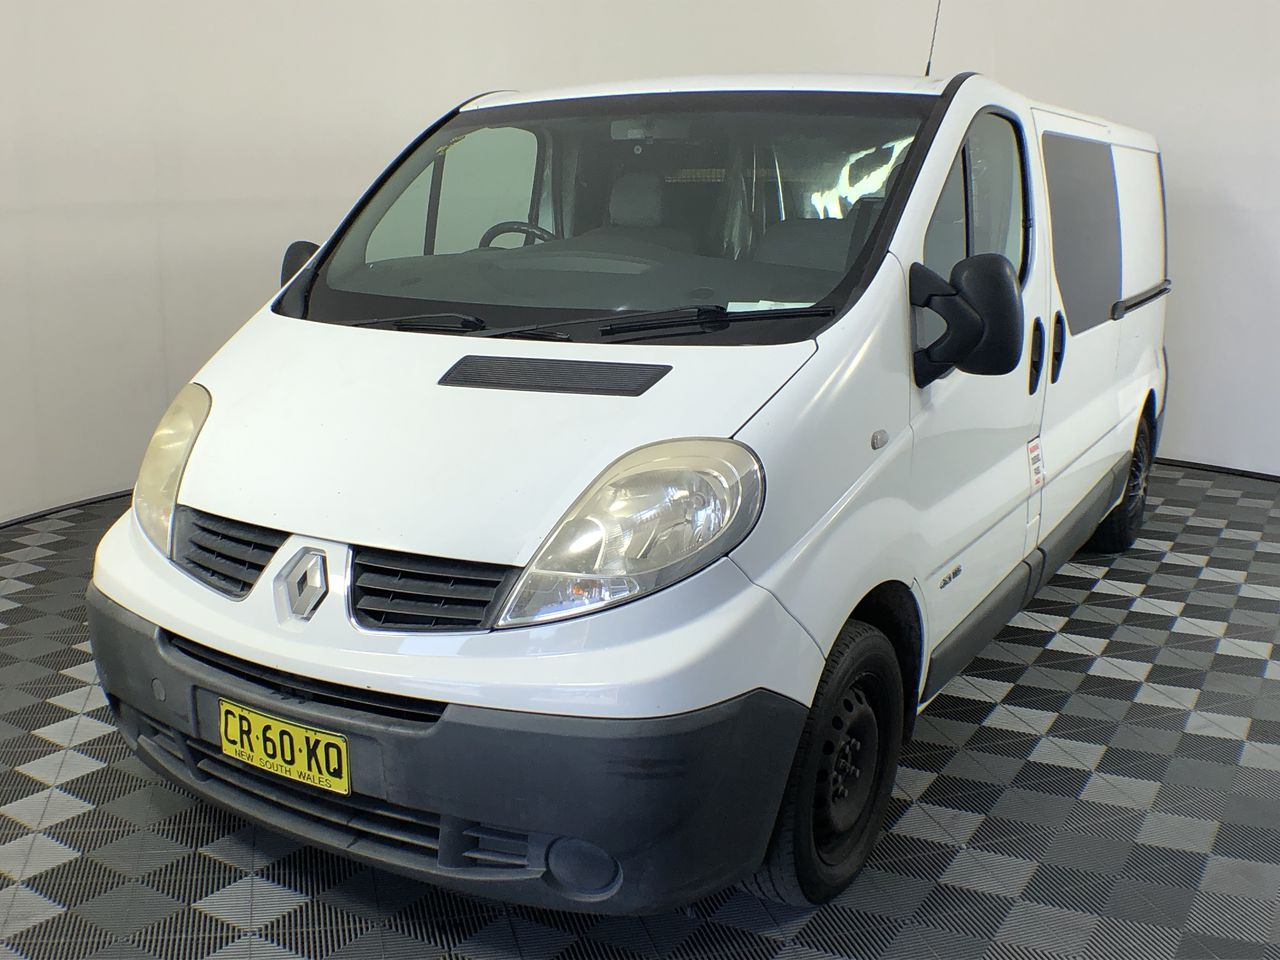 Renault Trafic BASE L2H1 Turbo Diesel Manual Van